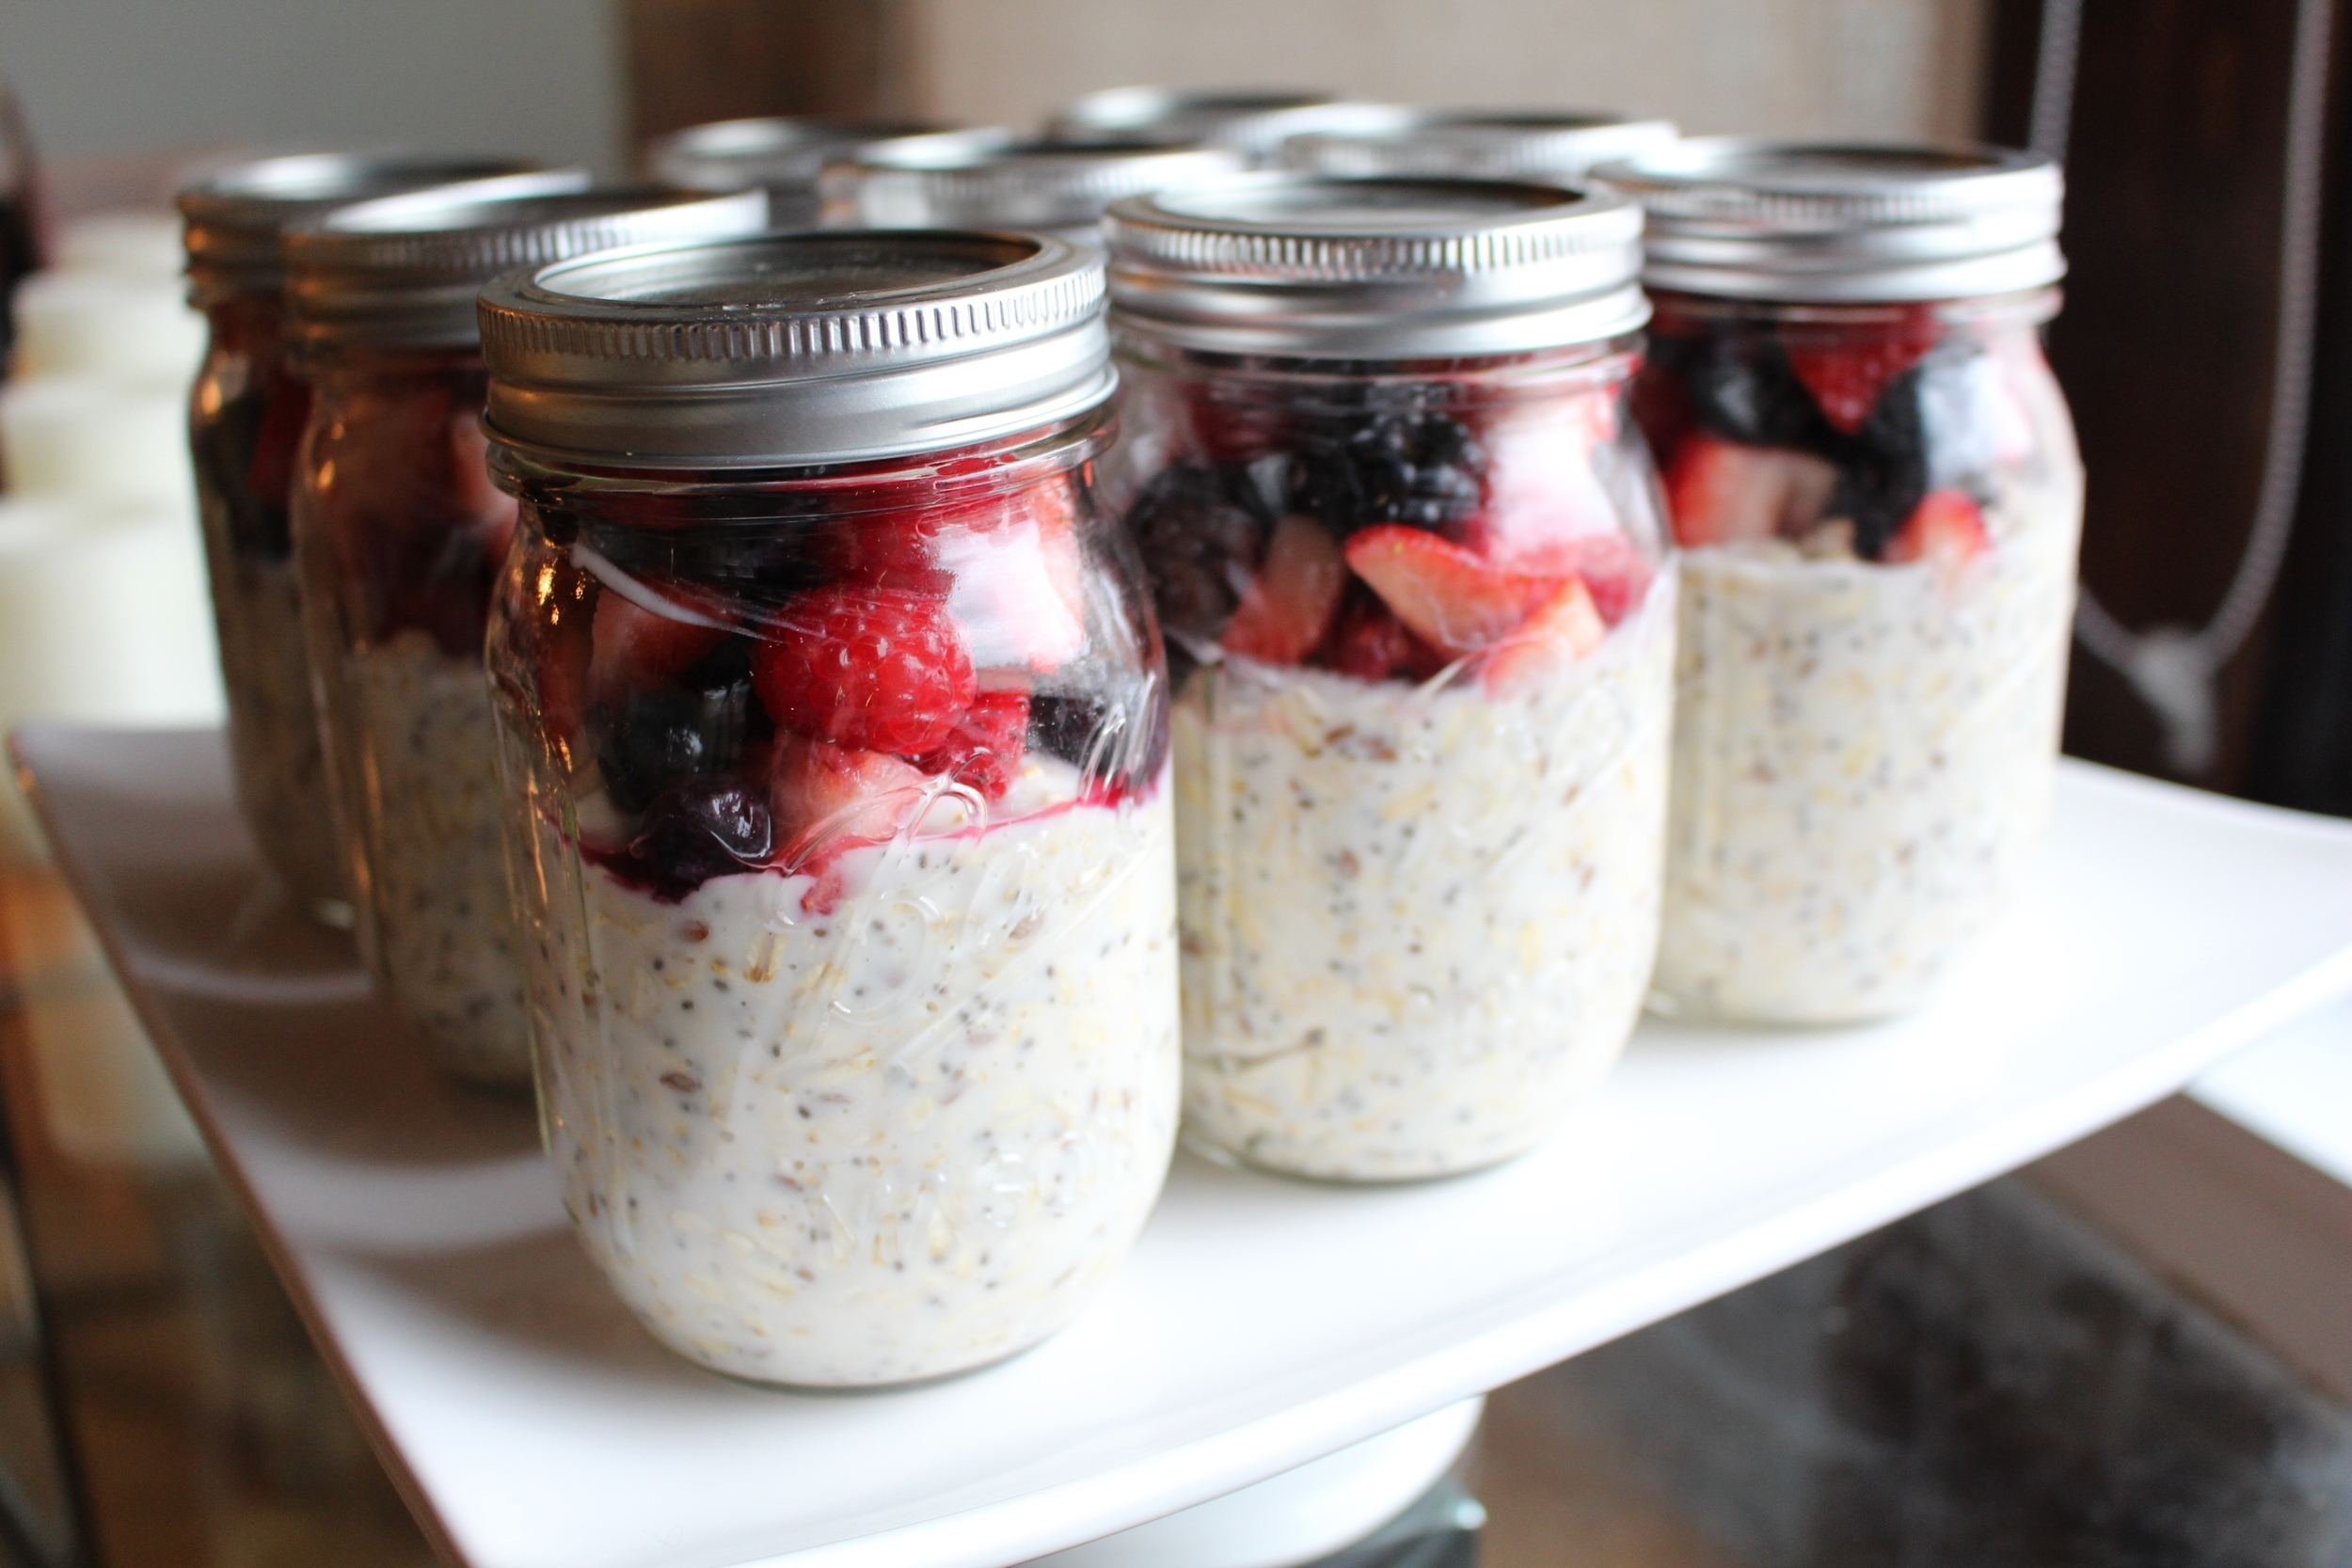 Everything just looks so much prettier in Jars don't they? :)